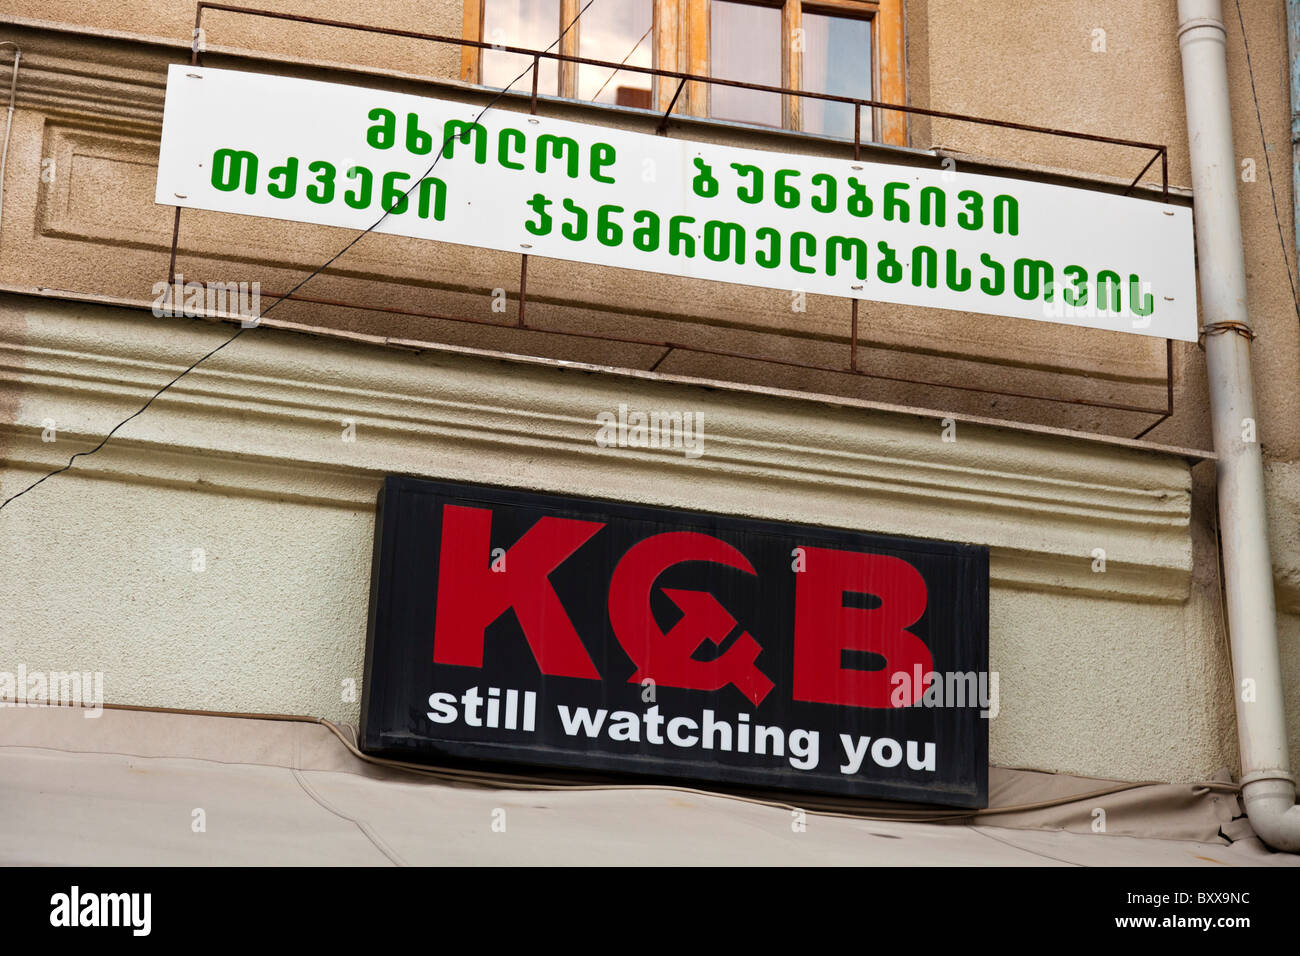 KGB still watching you - black humour in a restaurant name in Tbilisi Georgia. JMH4076 - Stock Image